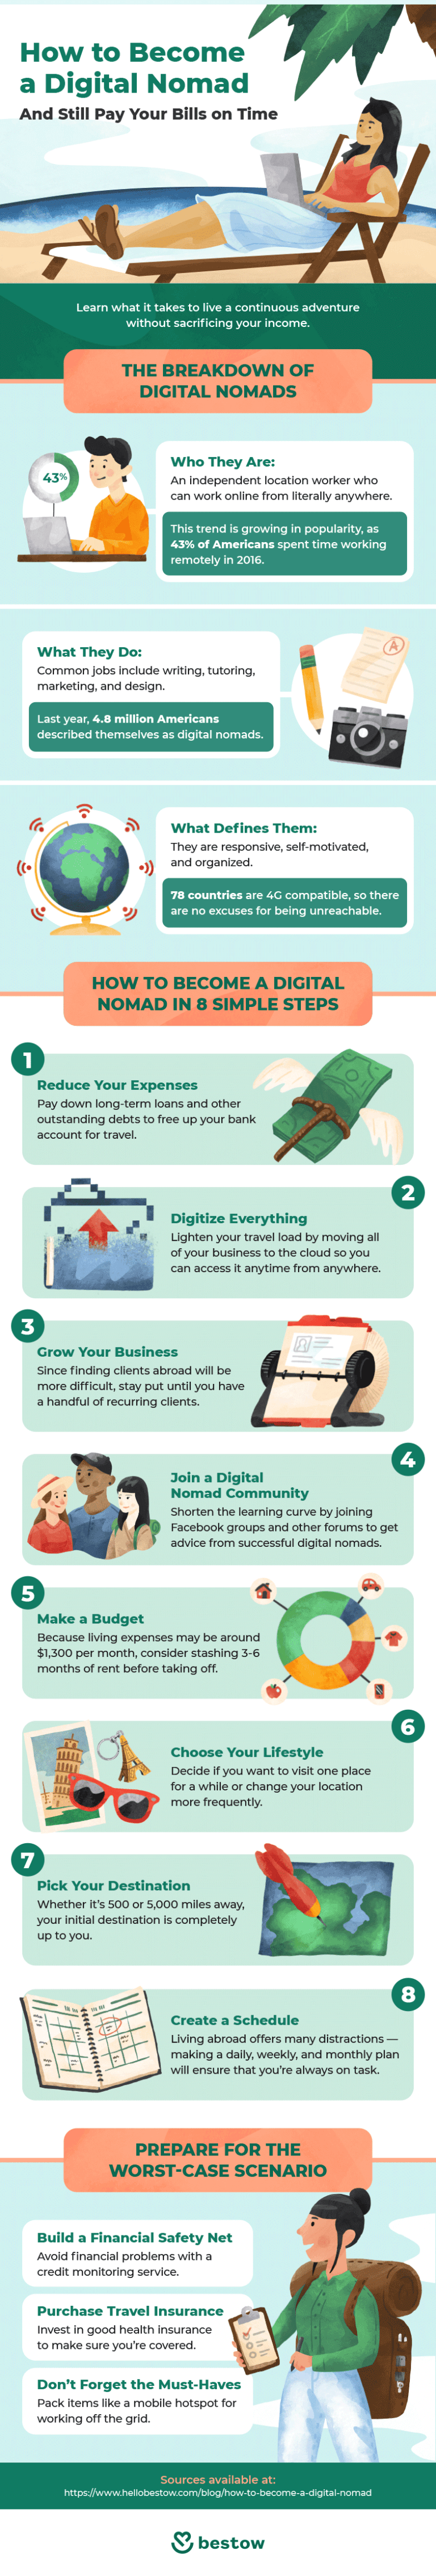 how-to-become-a-digital-nomad-infographic